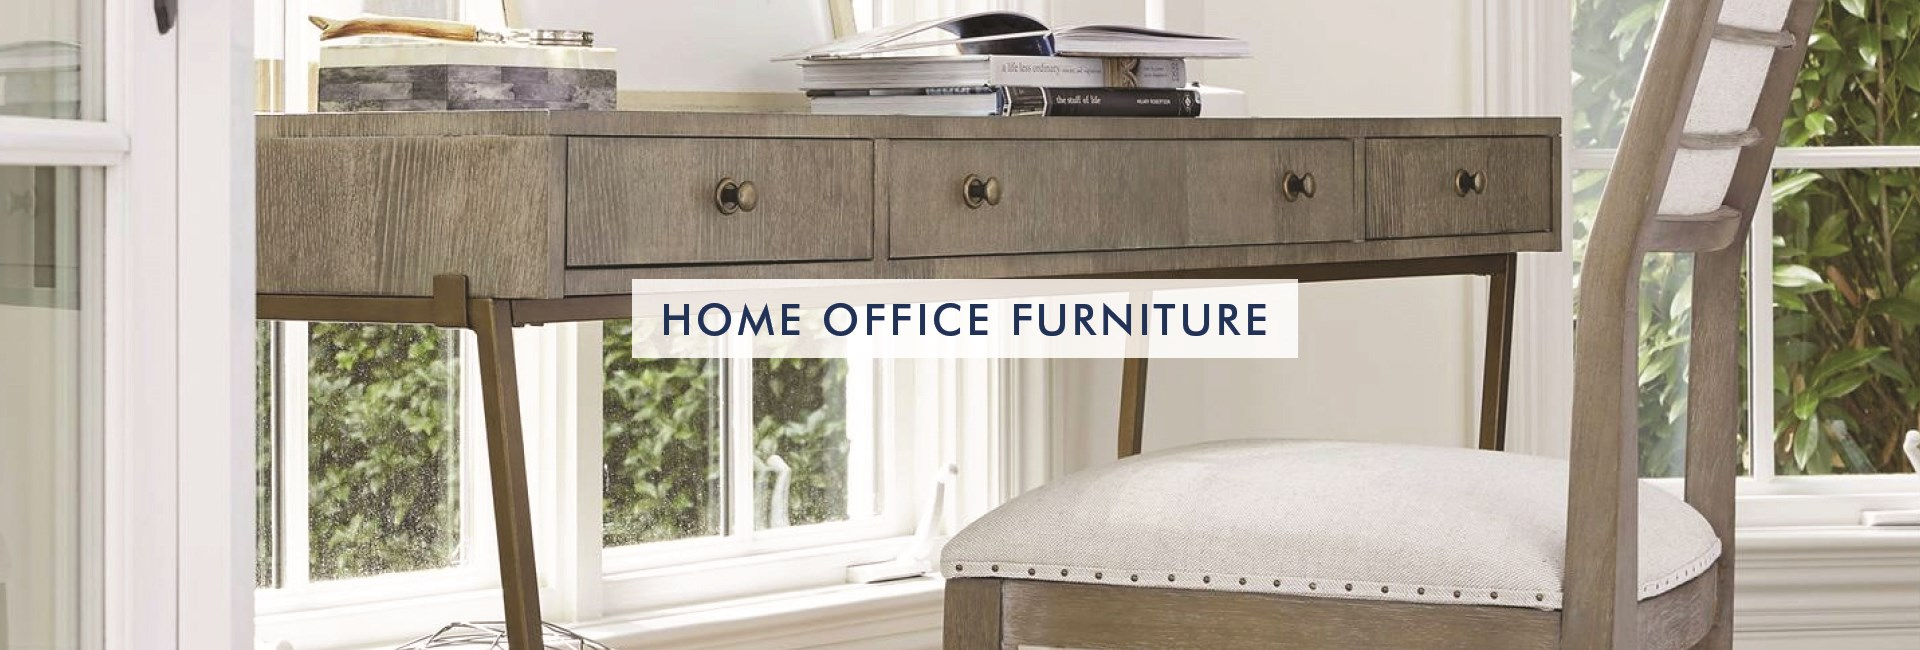 Shop Home Shop Home Office Furniture Beaumont Port Arthur Lake Charles